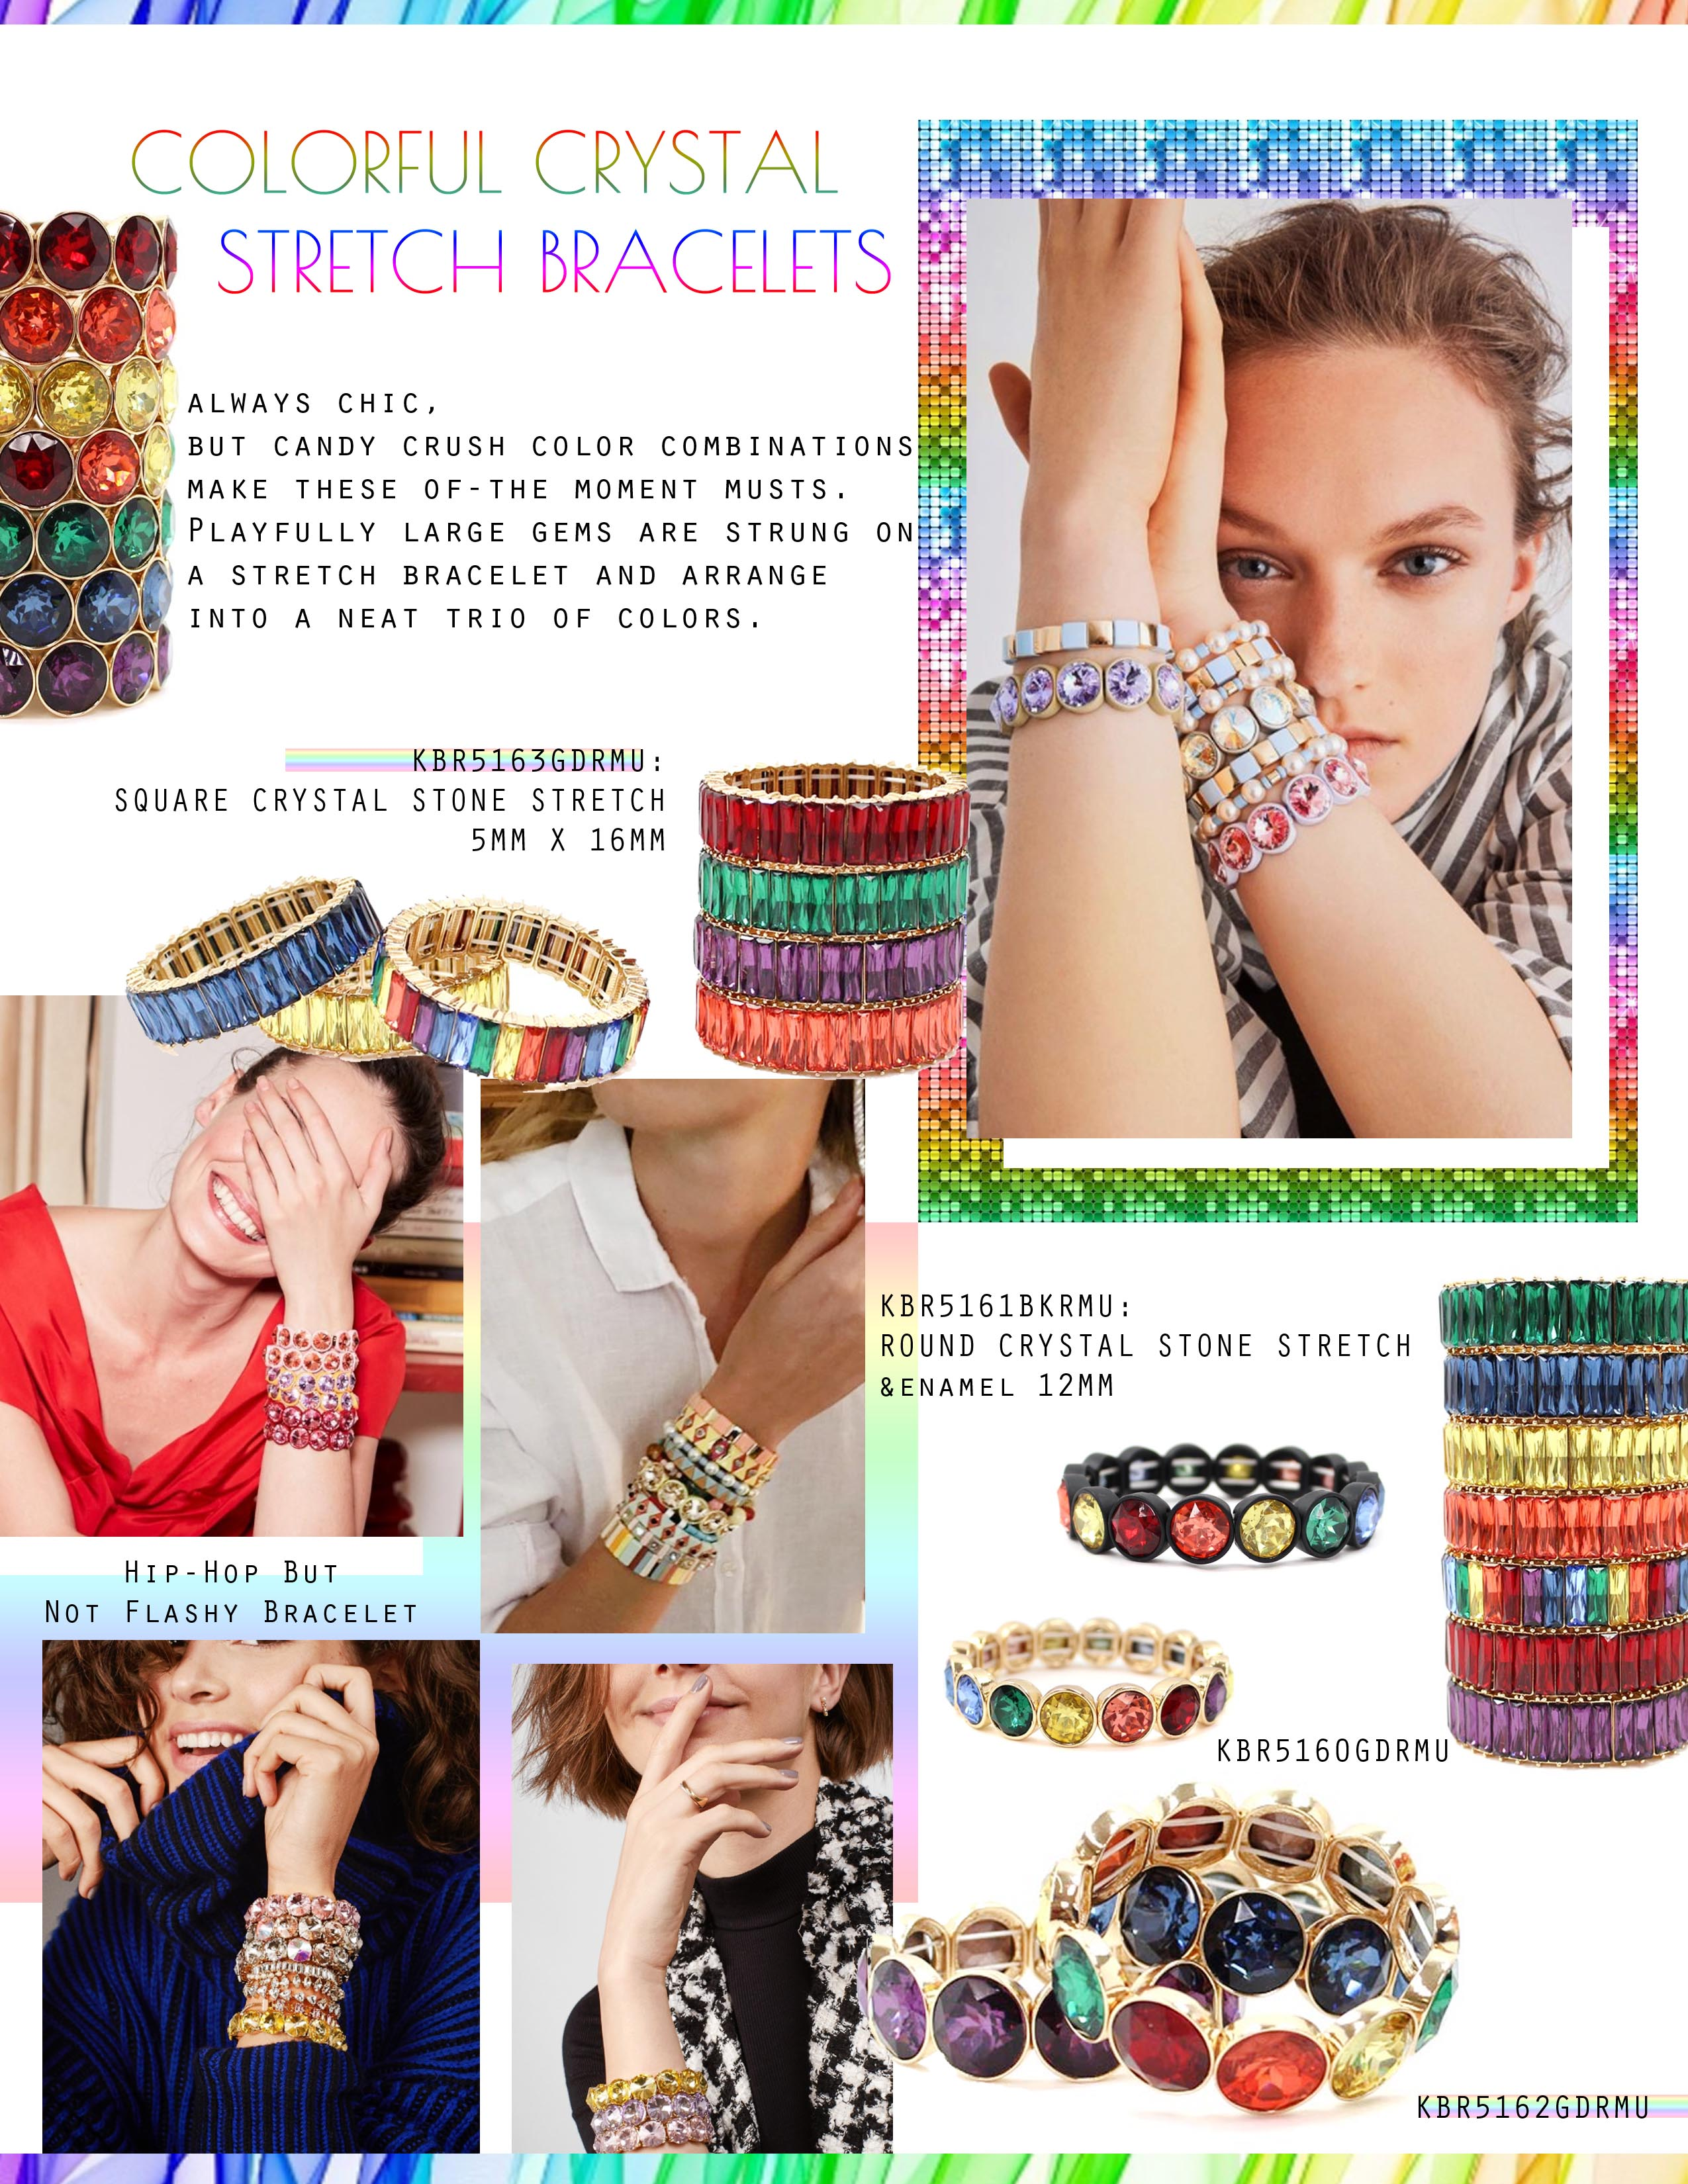 COLORFUL CRYSTAL BRACELET